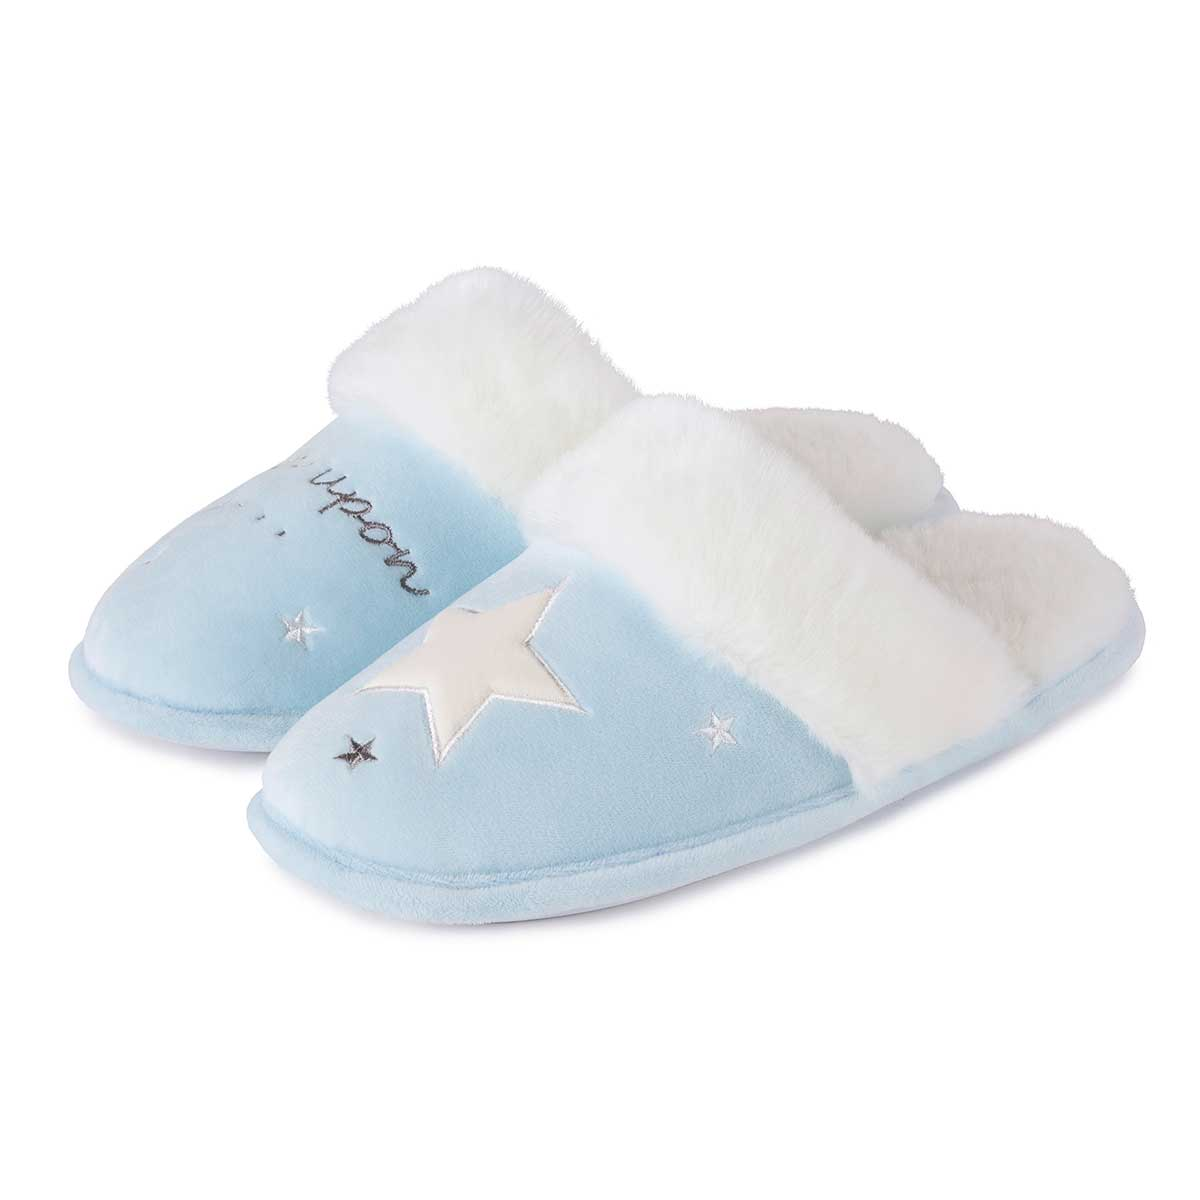 c9e8b5851 totes Ladies Novelty Slippers Blue Star | totes ISOTONER